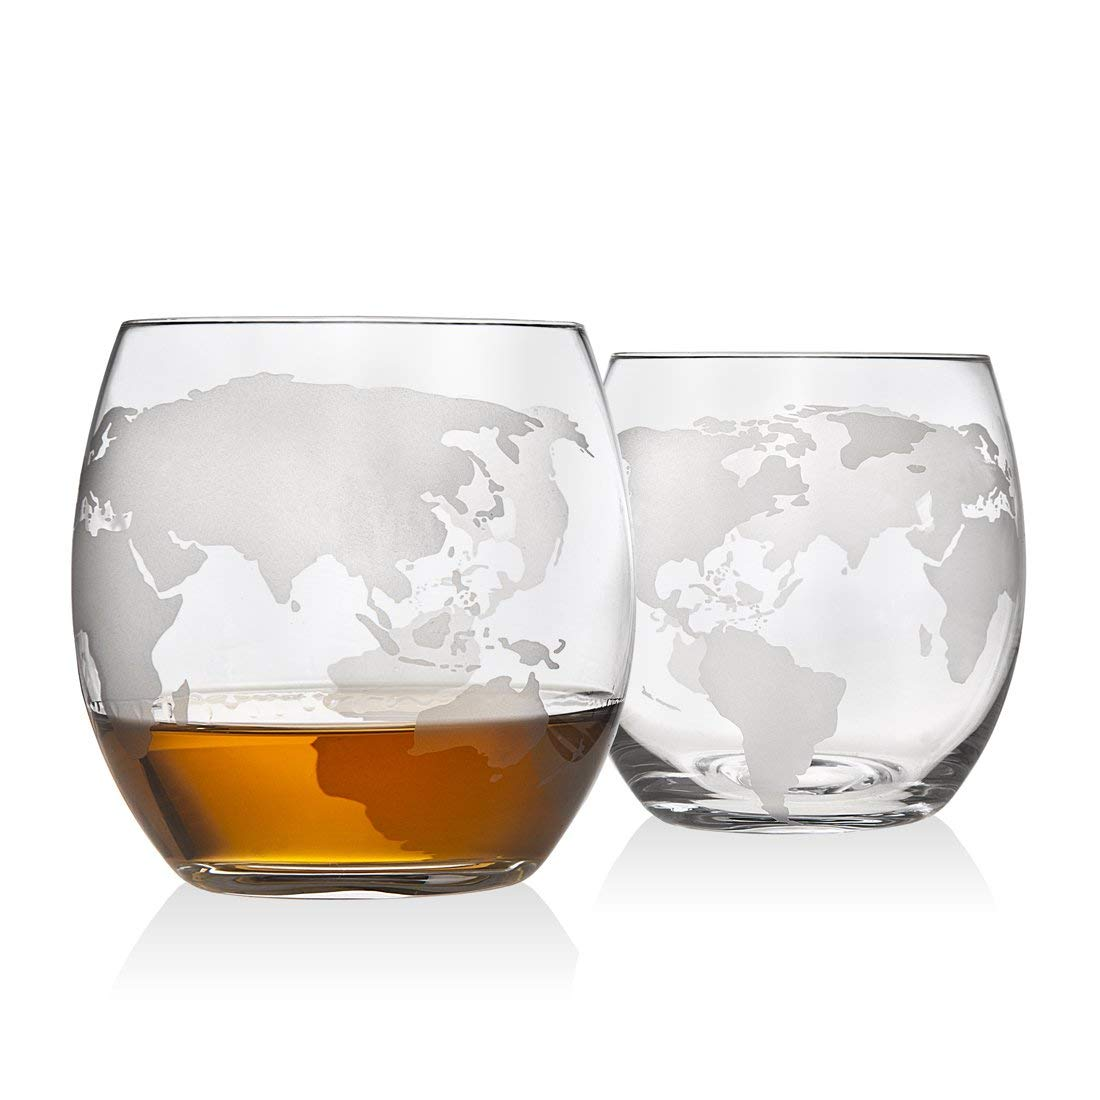 Take 40 percent off a set of whiskey glasses and a globe-themed decanter (Photo via Amazon)